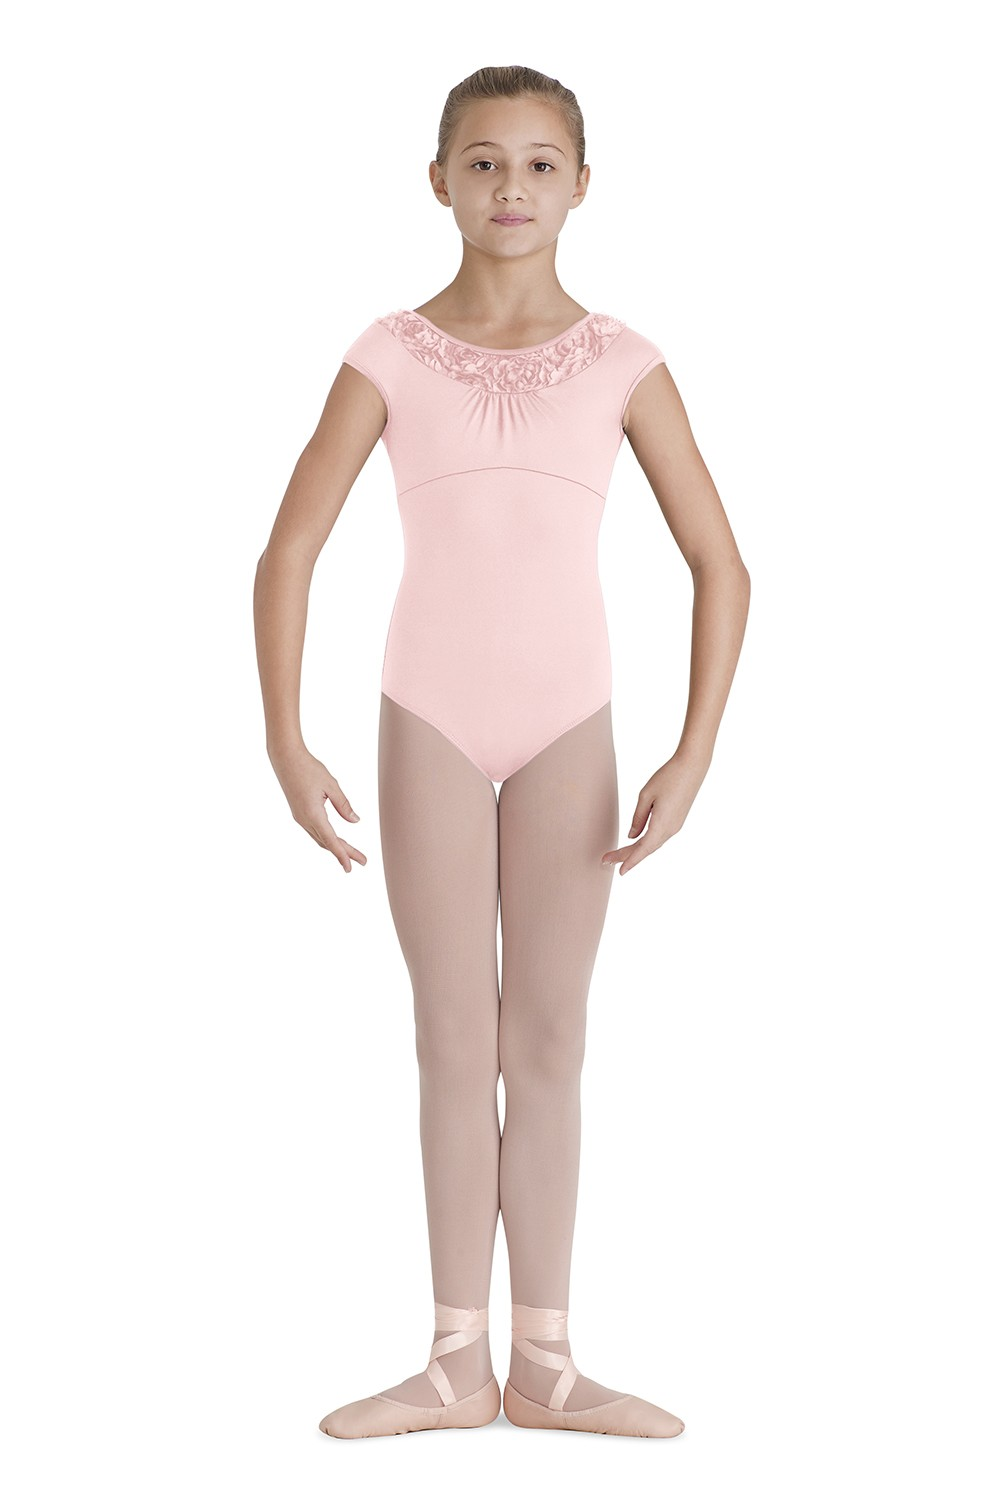 Shir Children's Dance Leotards